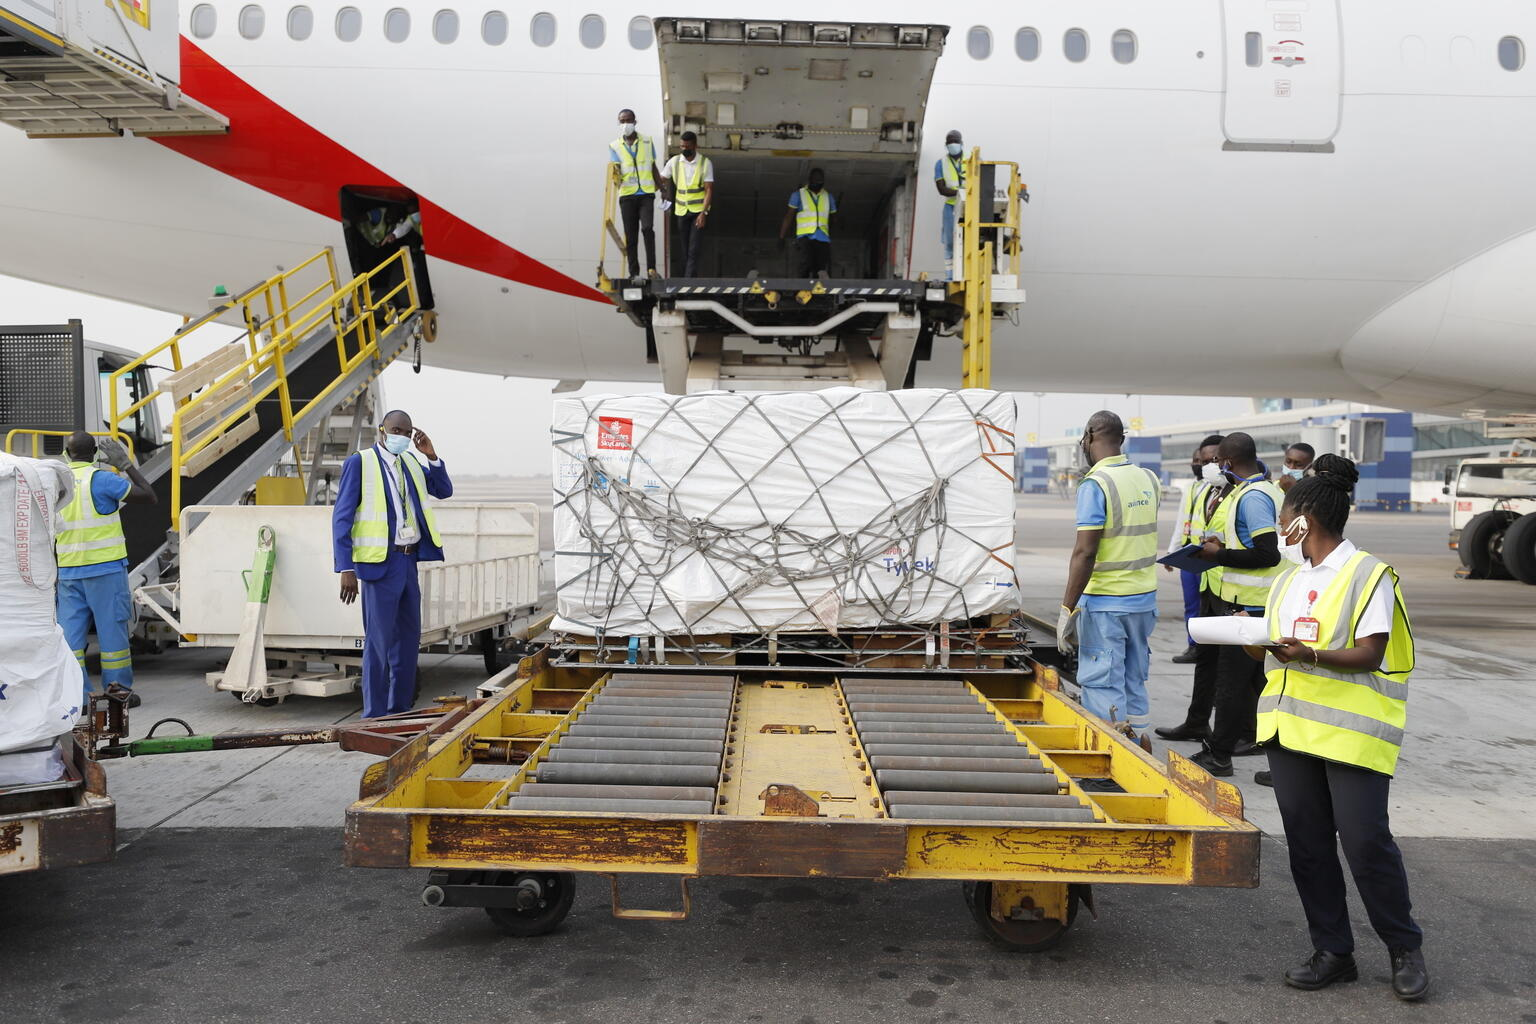 COVID-19 vaccine doses shipped by the COVAX Facility head to Ghana, marking beginning of global rollout